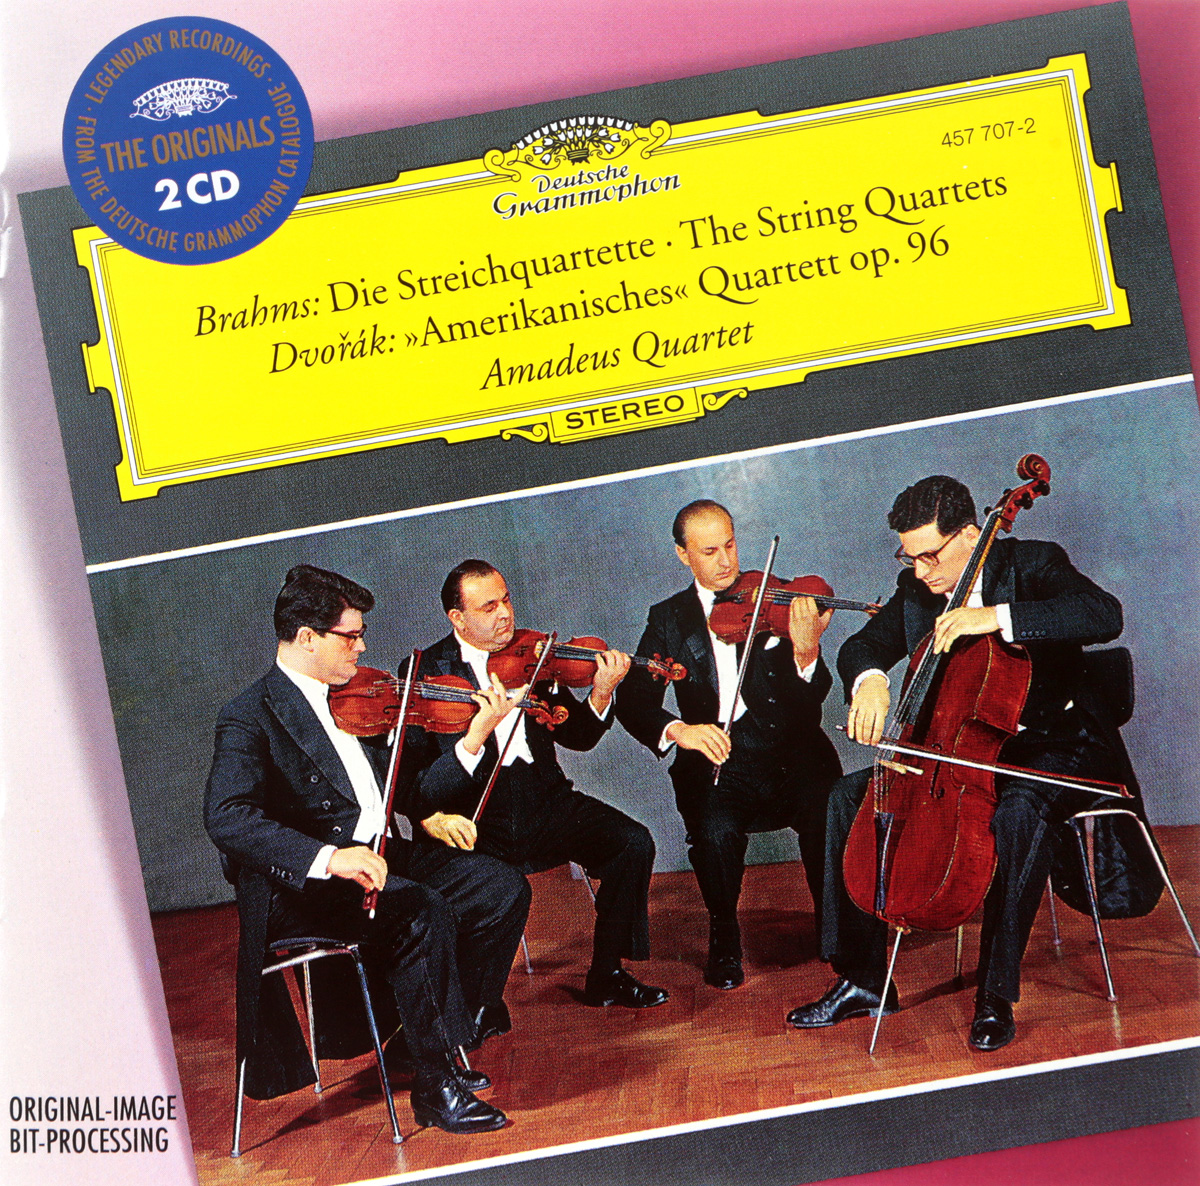 Brahms, Dvorak, Amadeus-Quartett - Brahms: The String Quartets - Dvorak: String Quartet American (2 CD) emerson string quartet complete string quartets mendelssohn emerson string quartet 4 cd